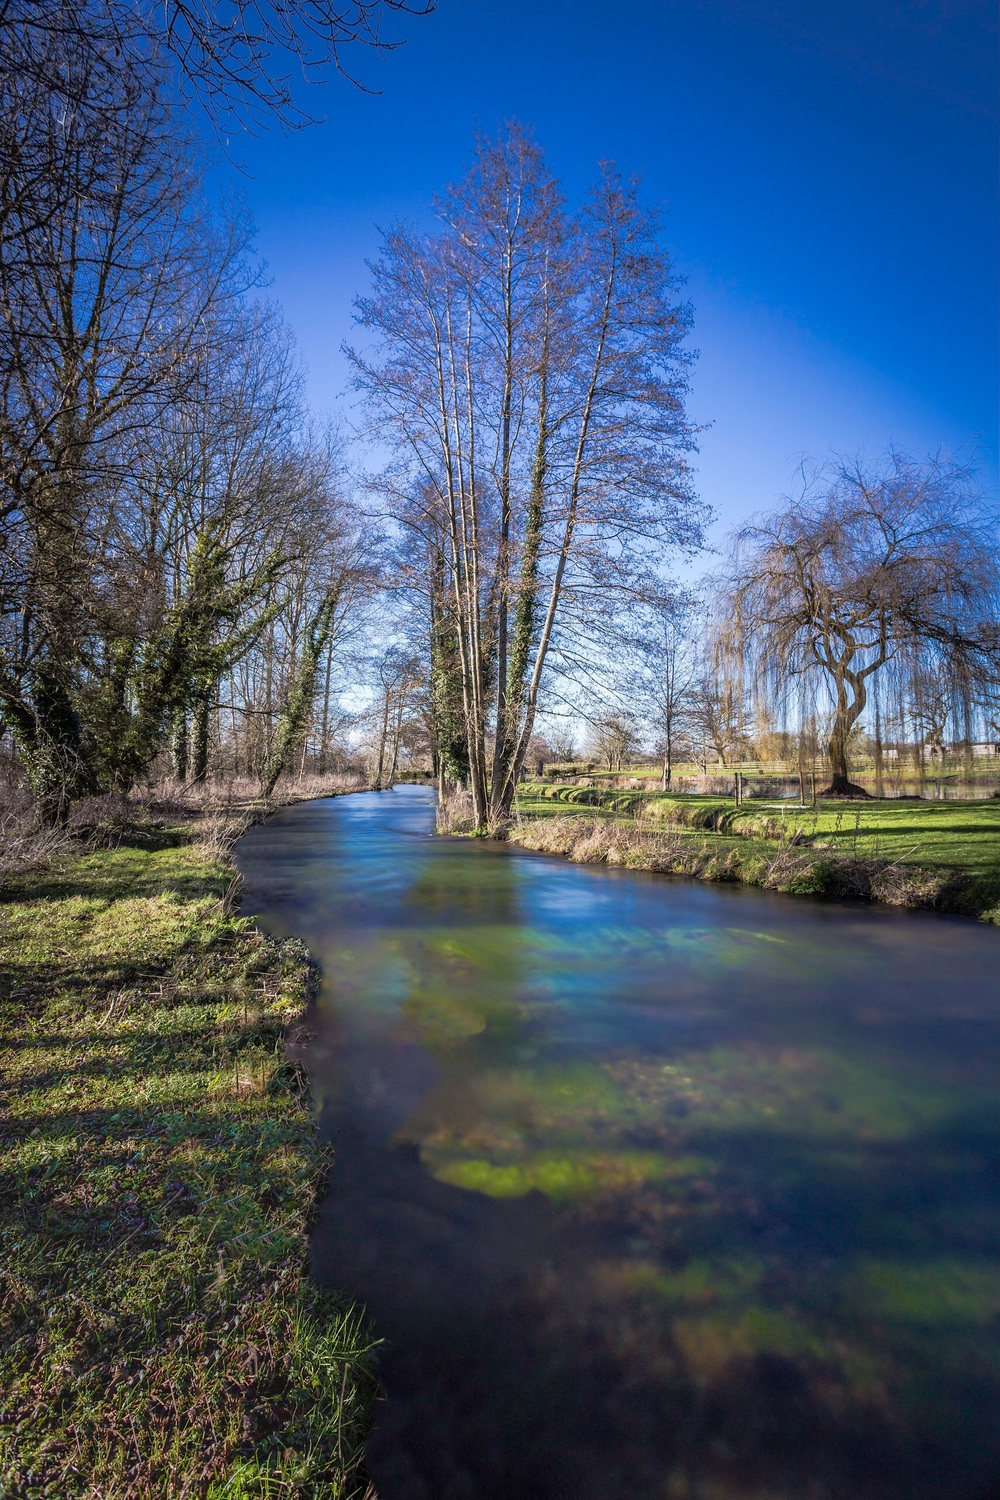 Long exposure picture of the river at Barton Stacey, Hampshire